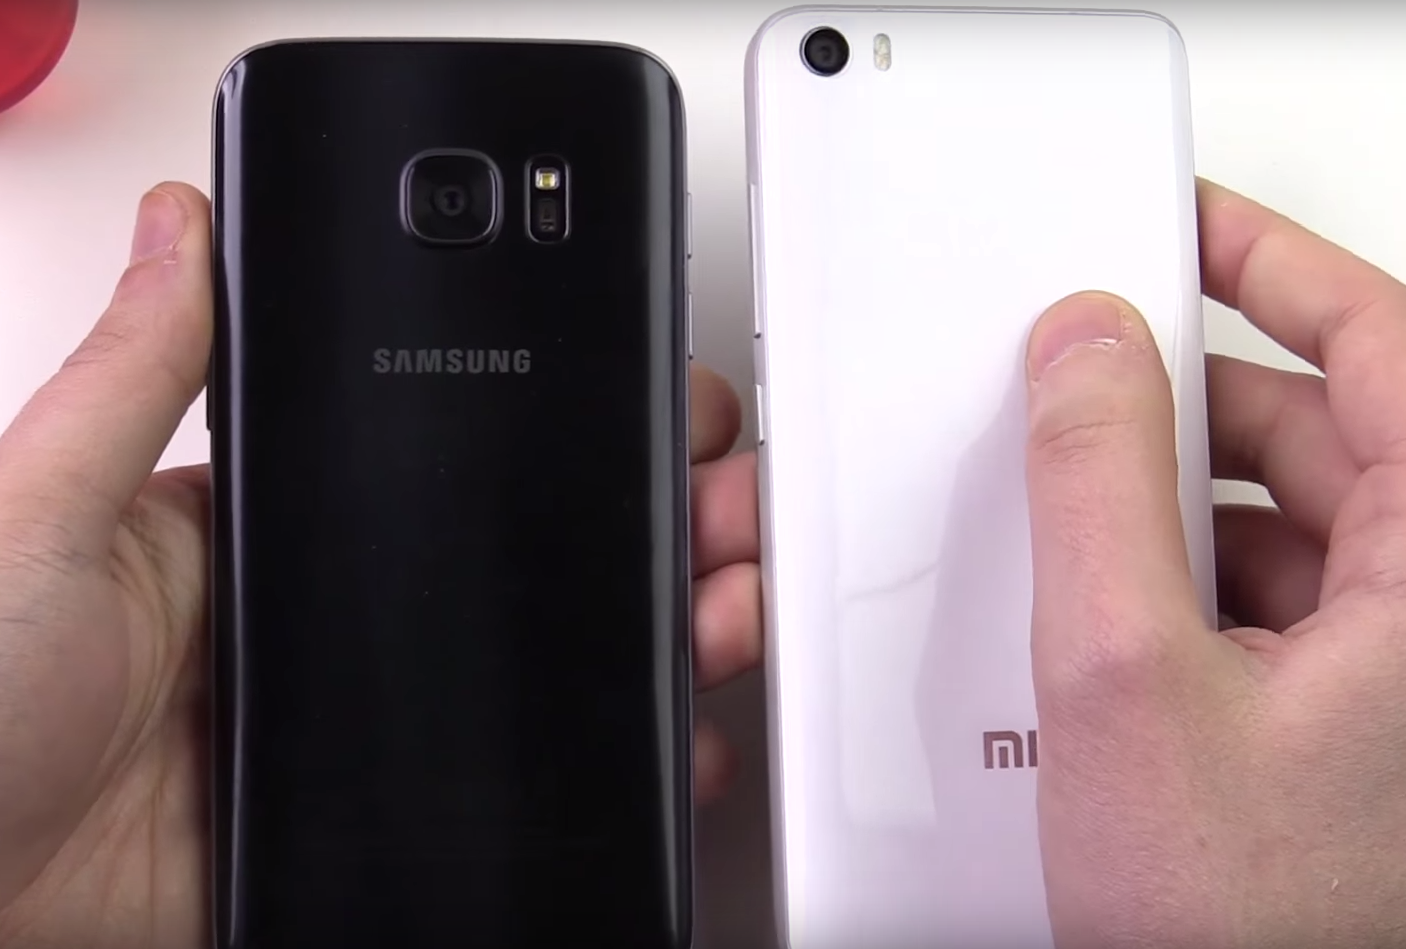 Xiaomi Mi 5 vs. Samsung Galaxy S7 holding the devices in hands, showing their back sides; white table in the back.